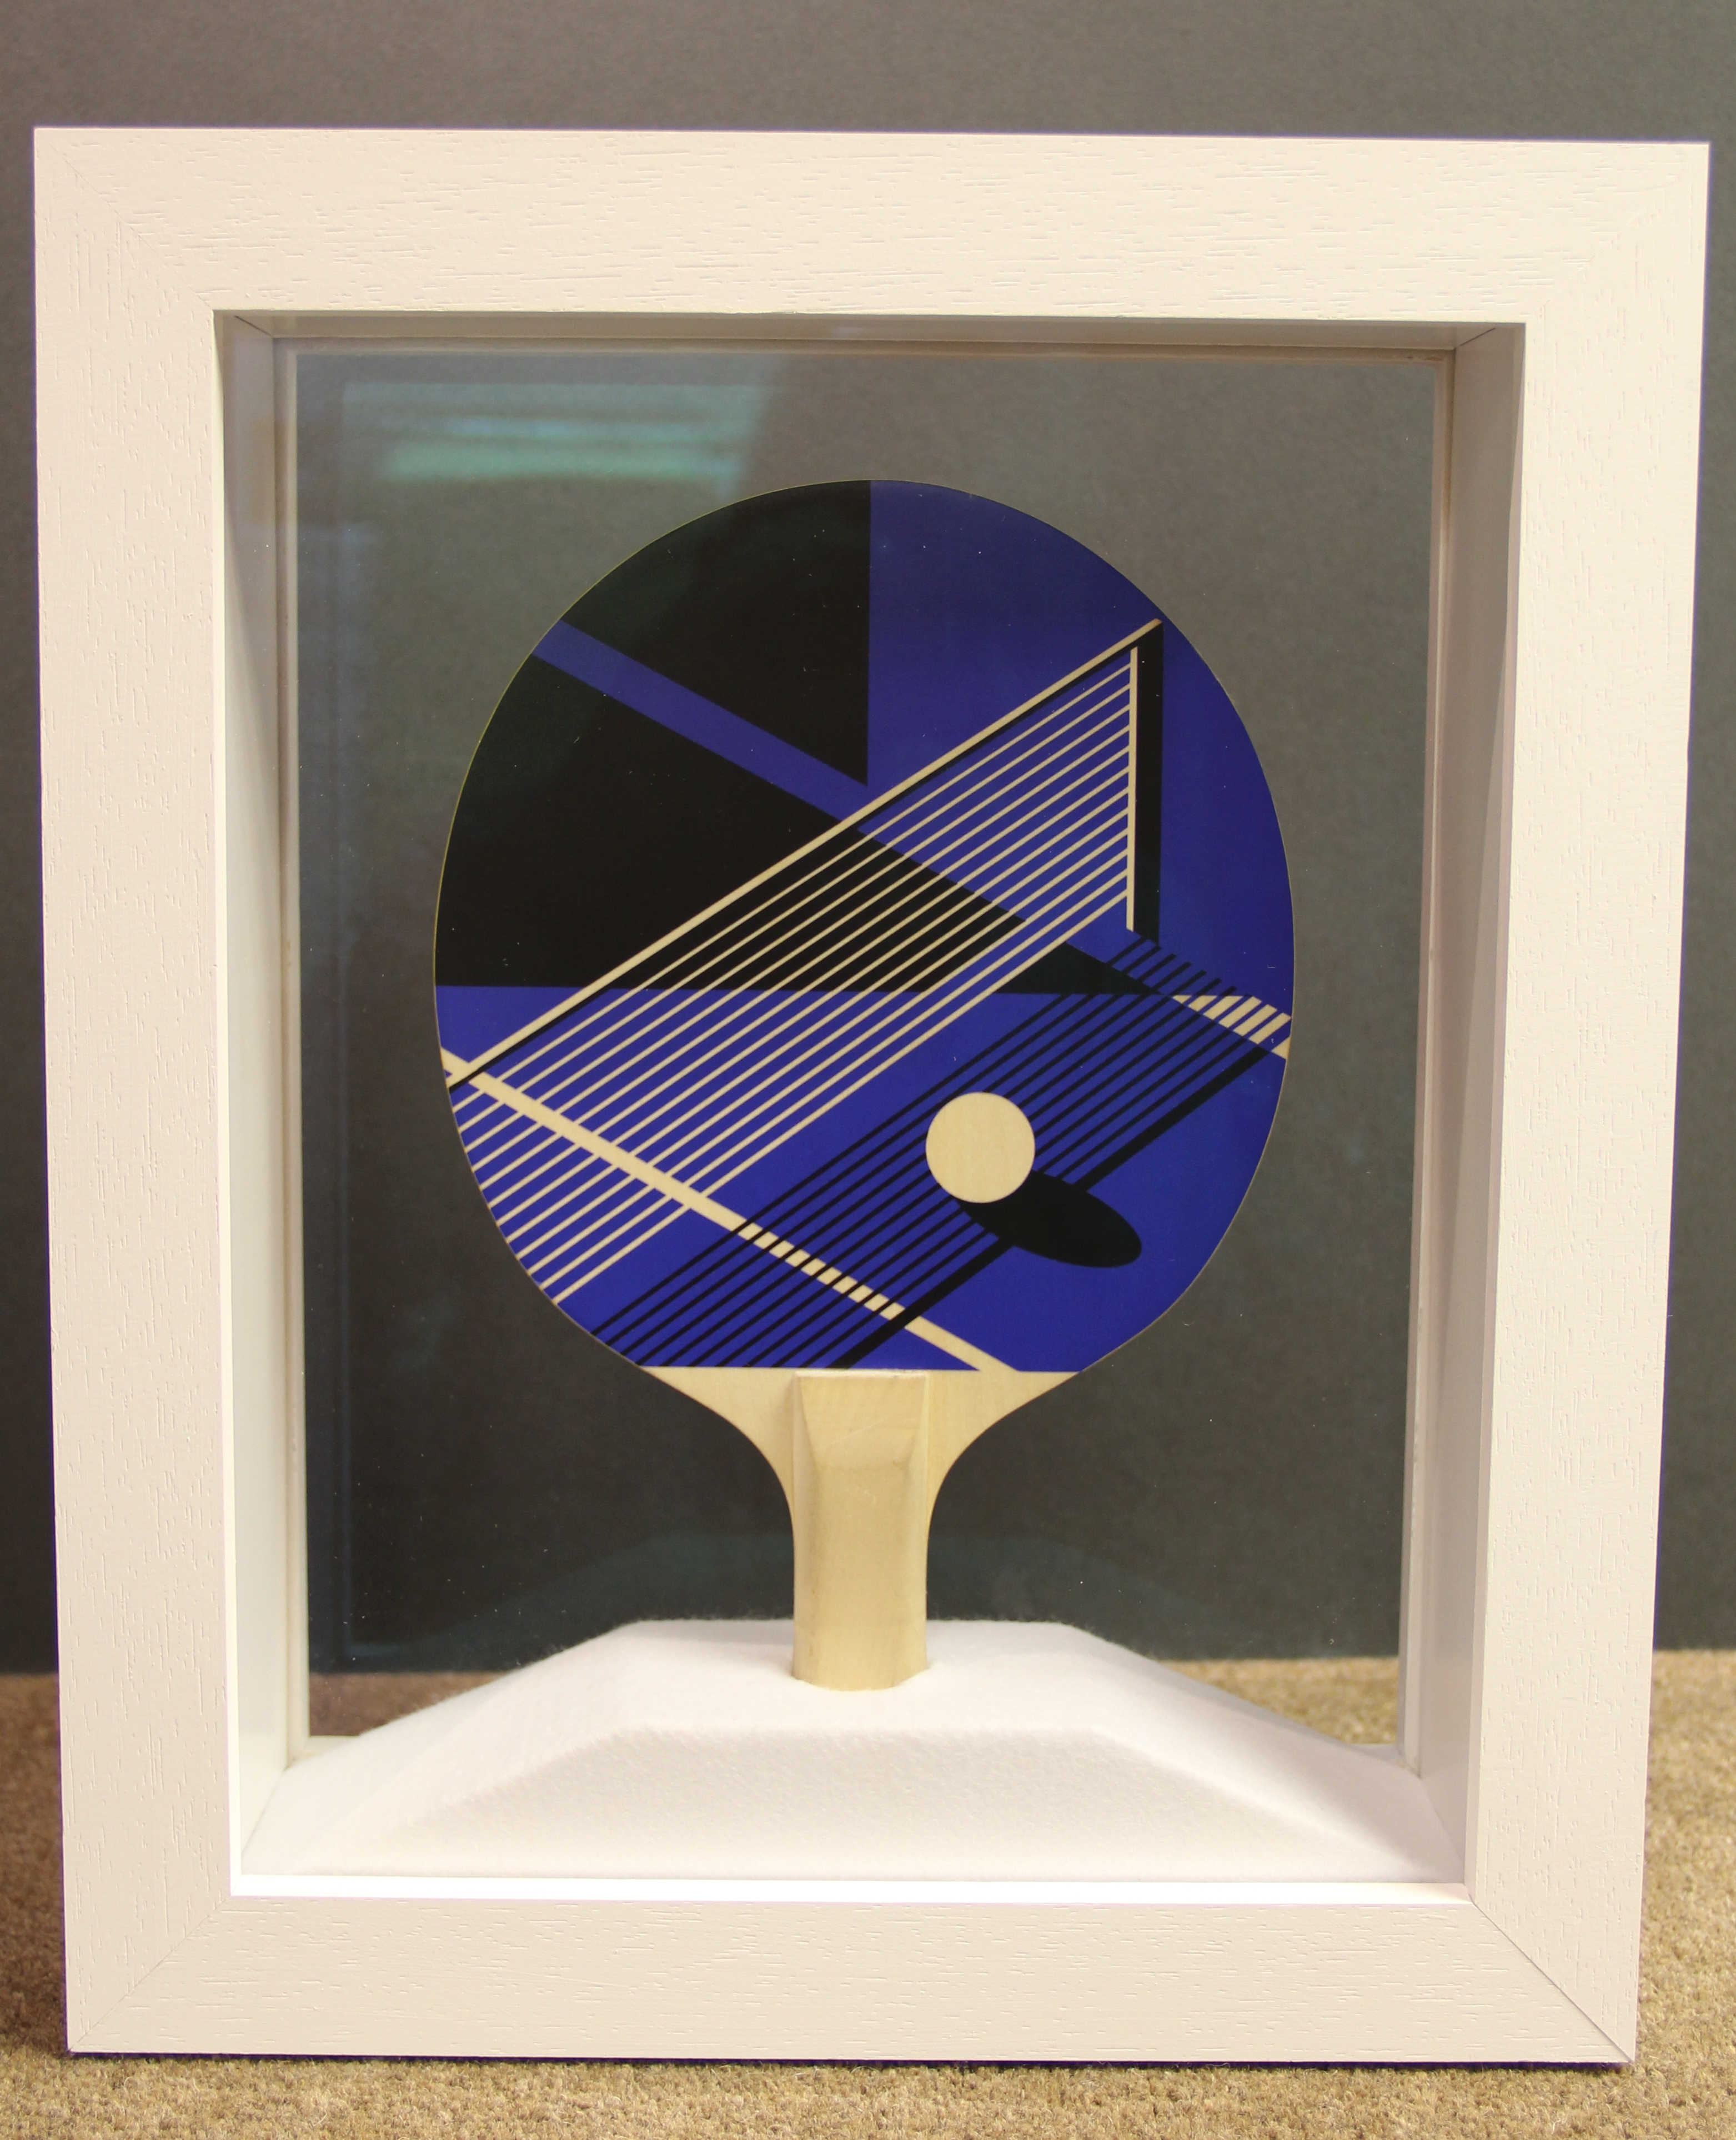 Table tennis bat in double sided frame